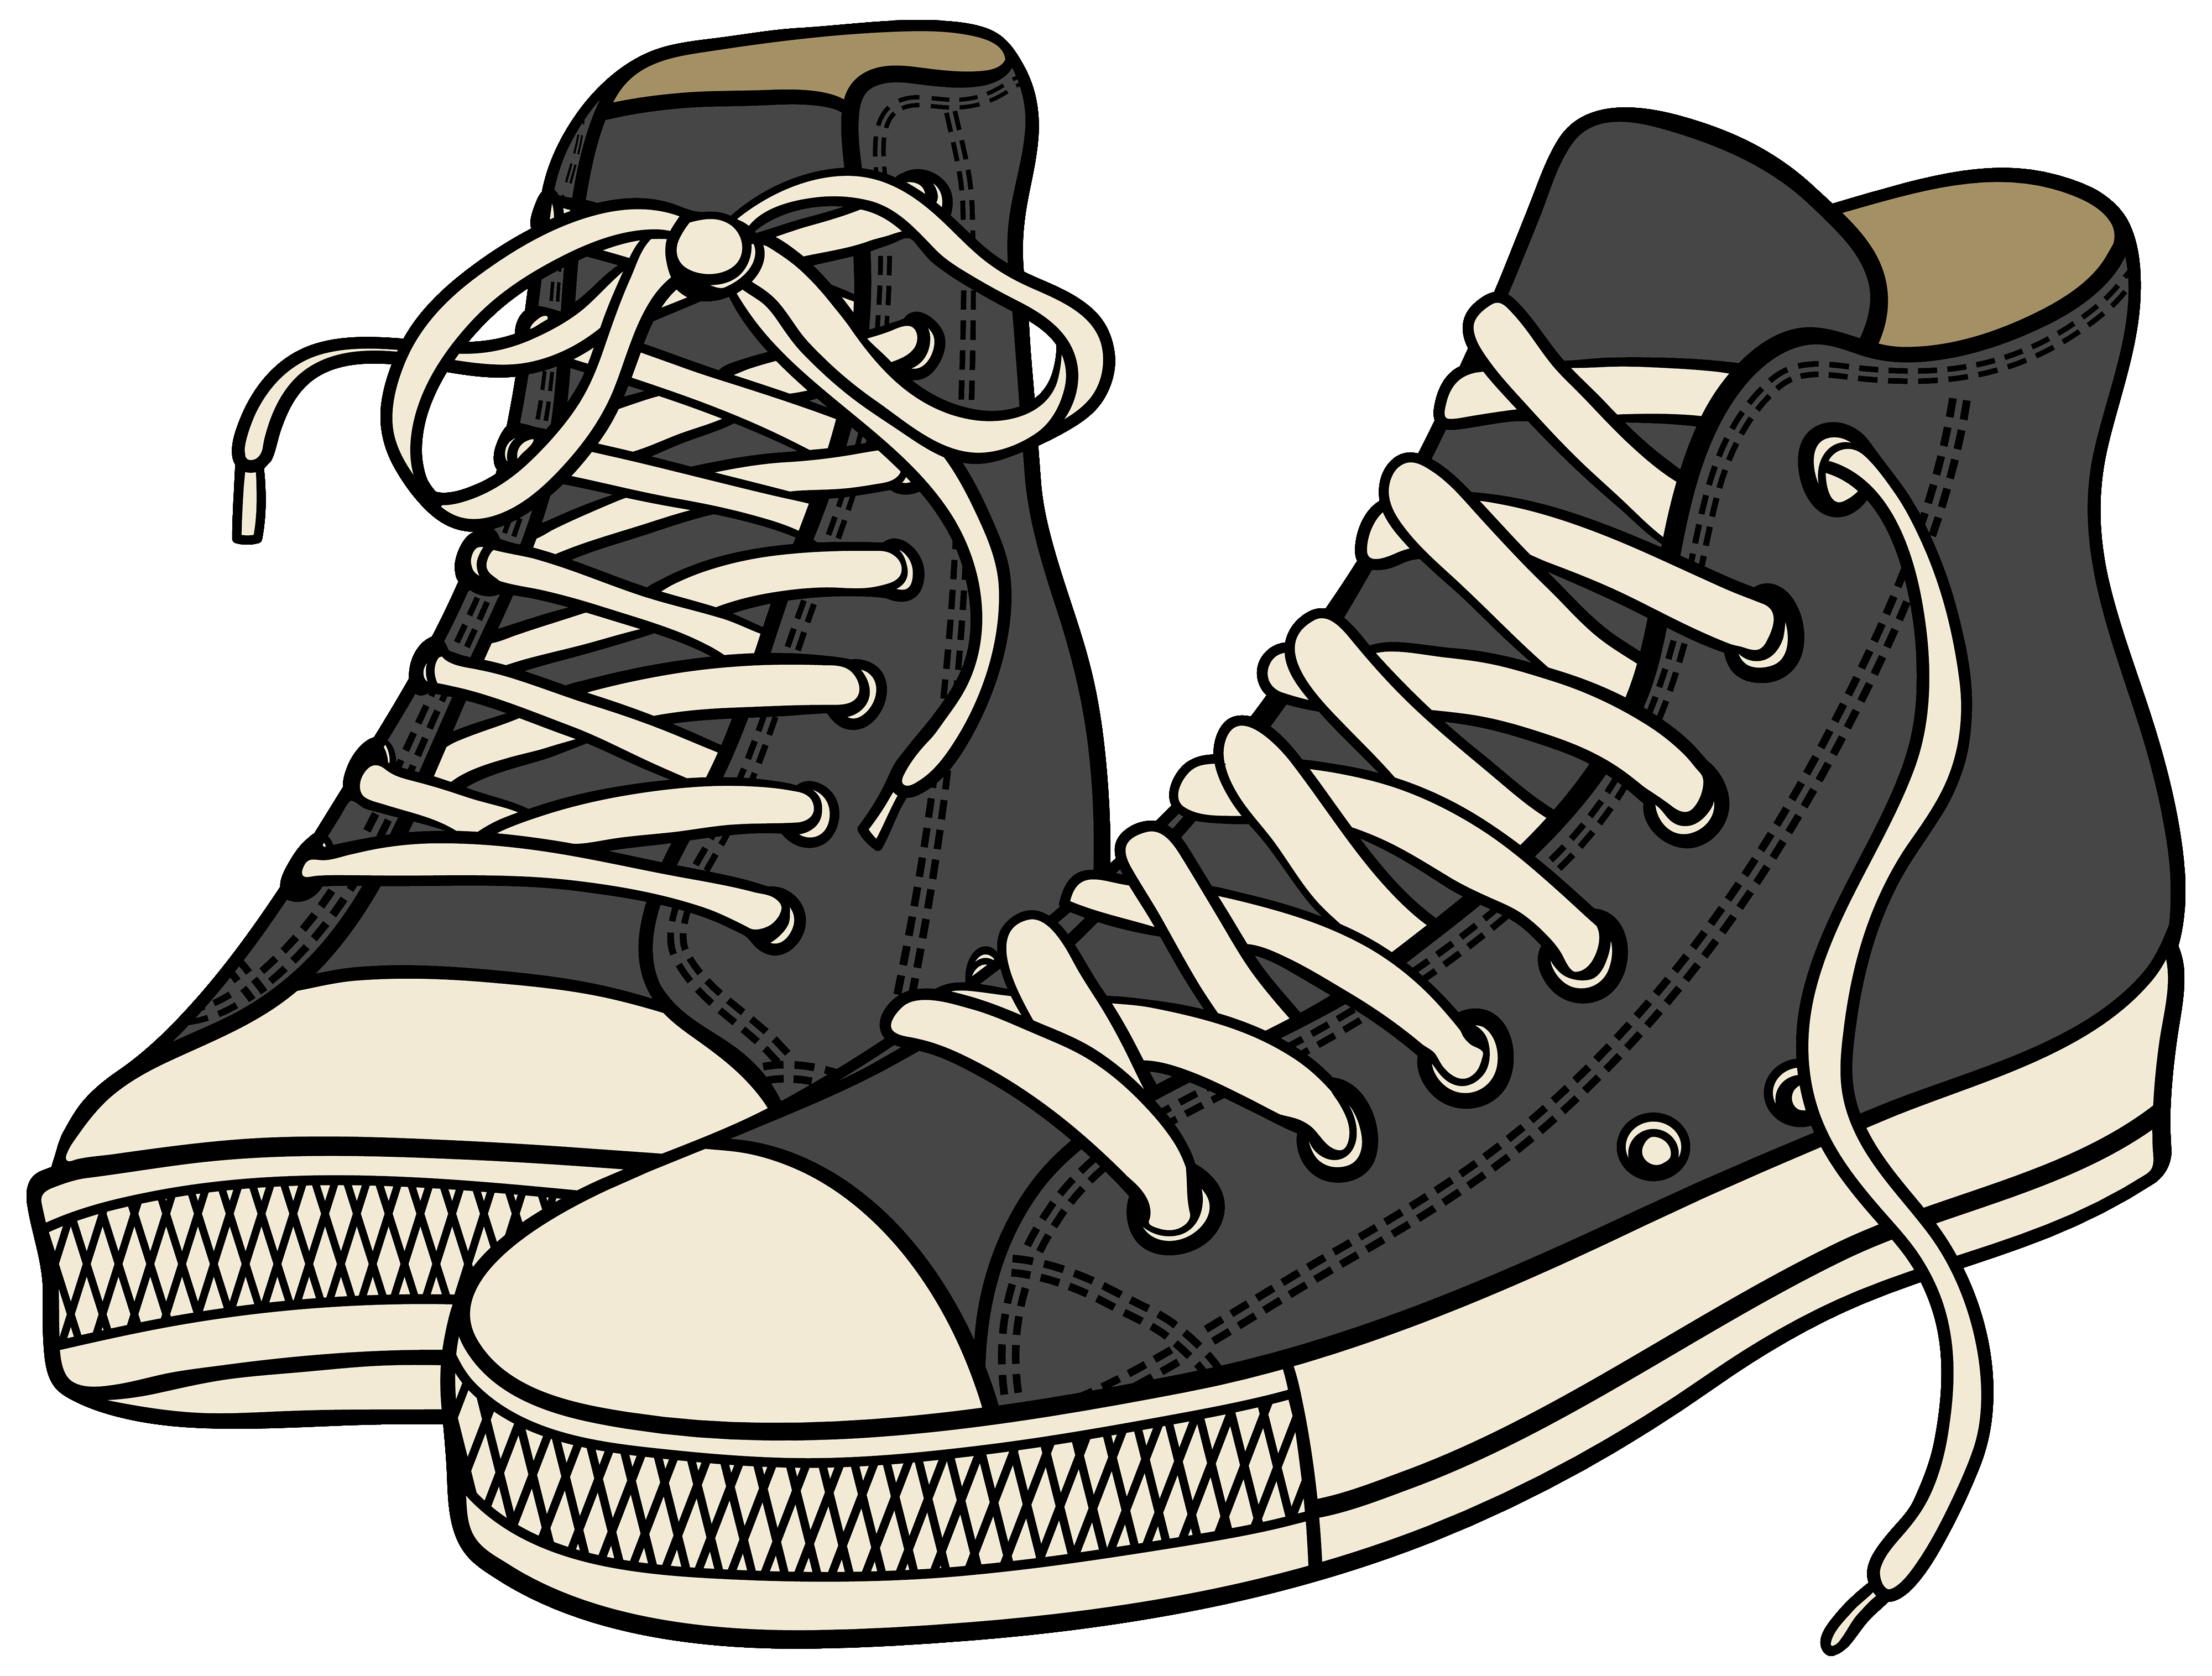 Pile of shoes clipart images gallery for free download.